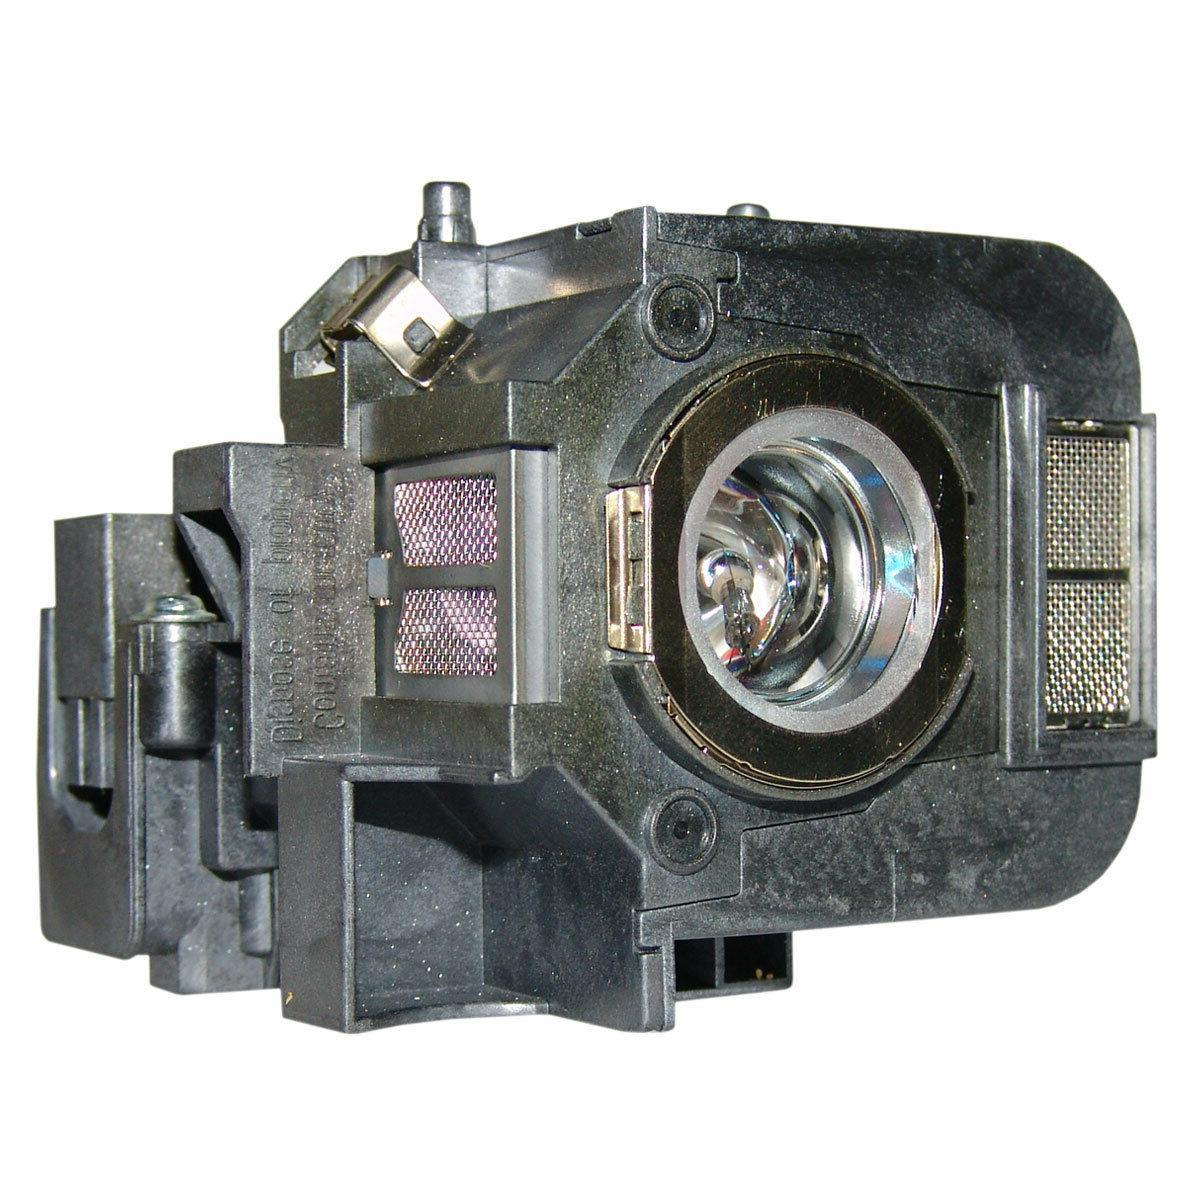 electrified e1 elplp50 1 eb824 replacement lamp